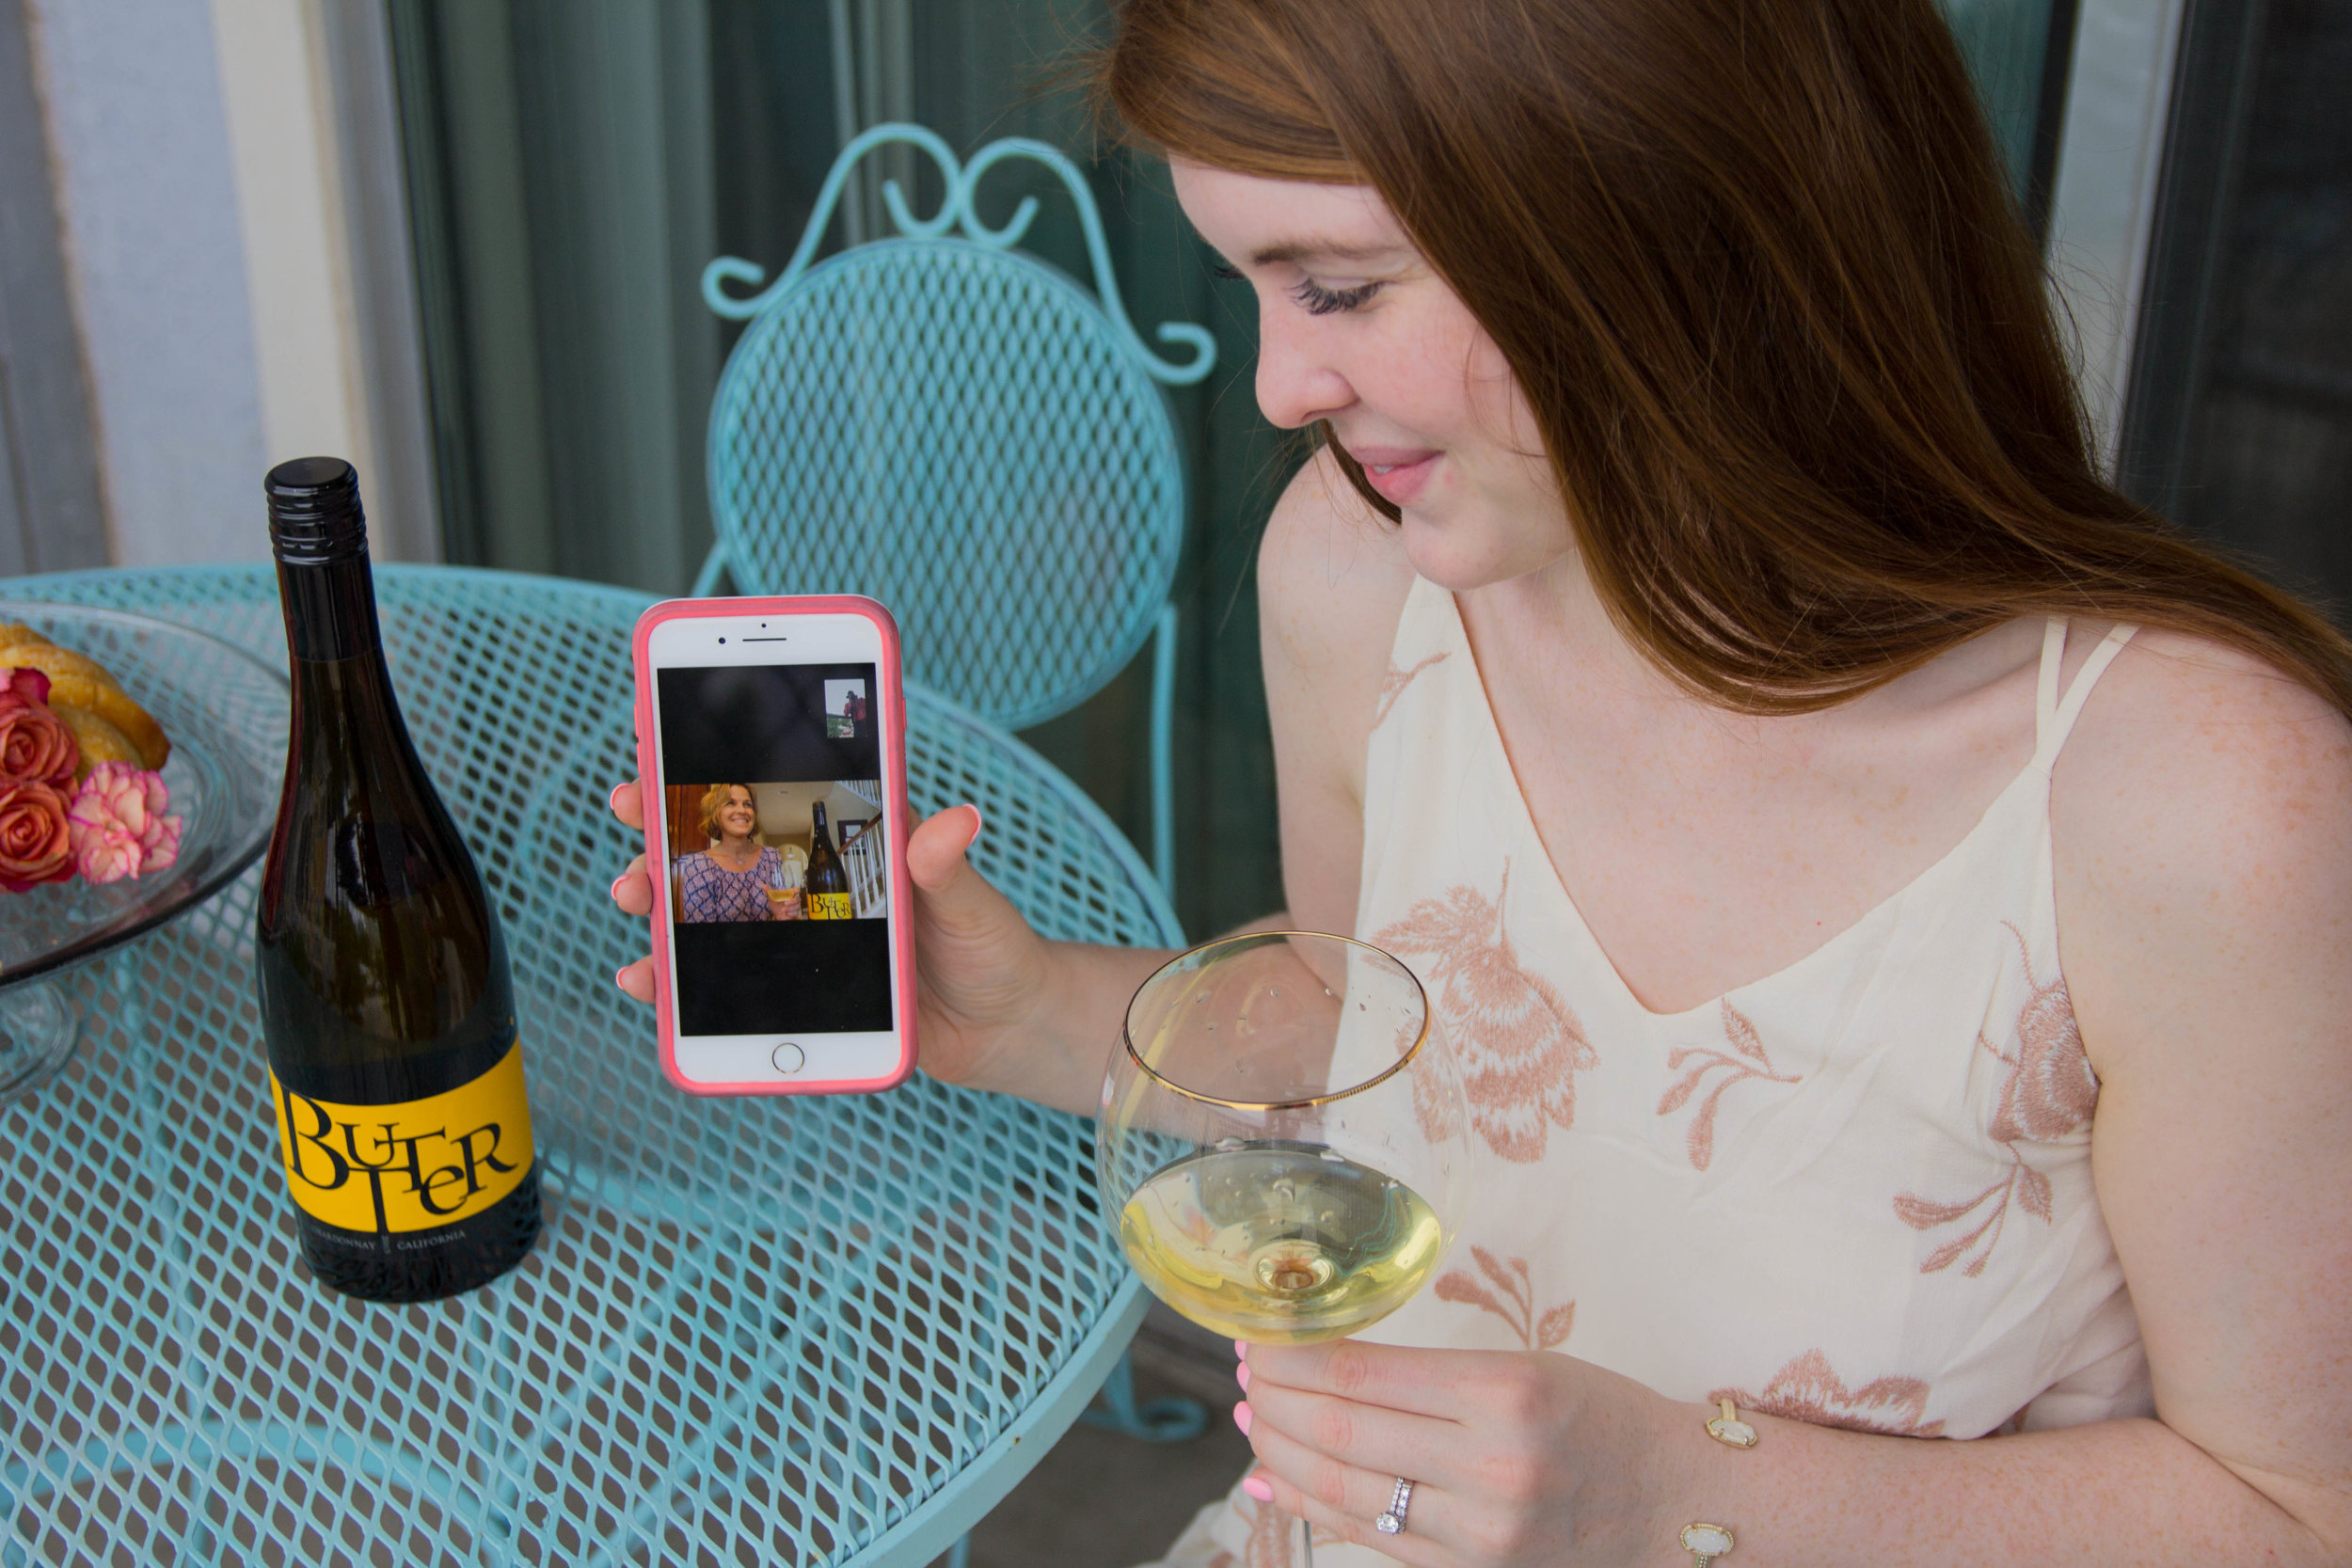 JaM Cellars Butter Chardonnay, Napa Wine, mother's day, cheers to mother in laws, bed bath and beyond tall wine glasses, lemon pound cake, the perfect mother in law gift, kendra scott elton bracelet, otterbox